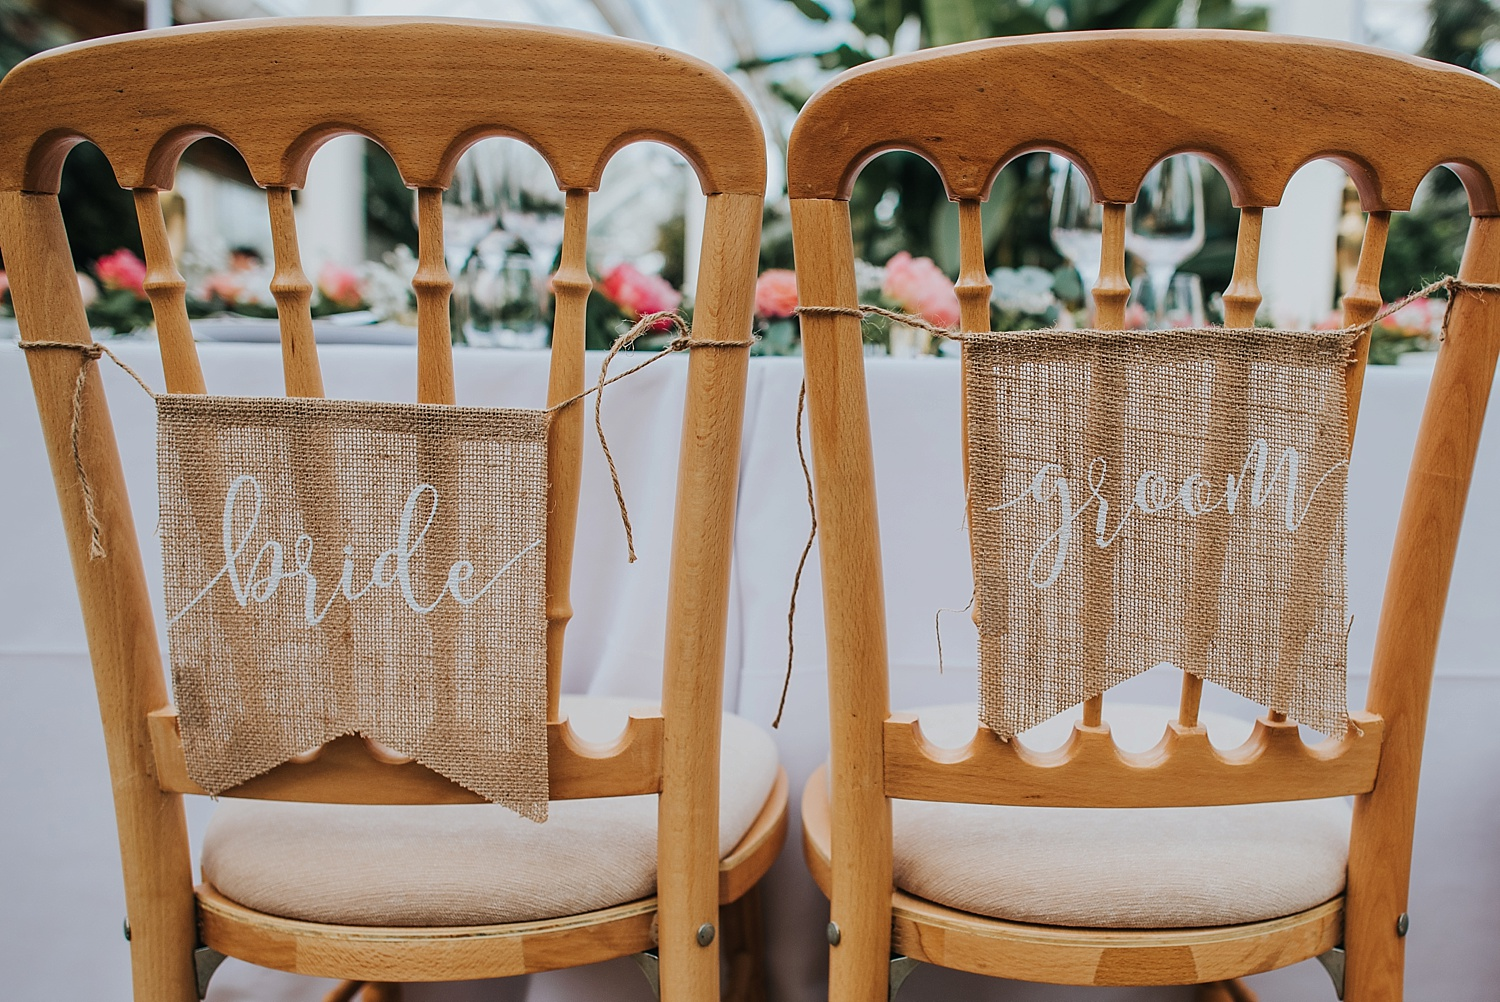 two chairs with bride and groom signs hanging down